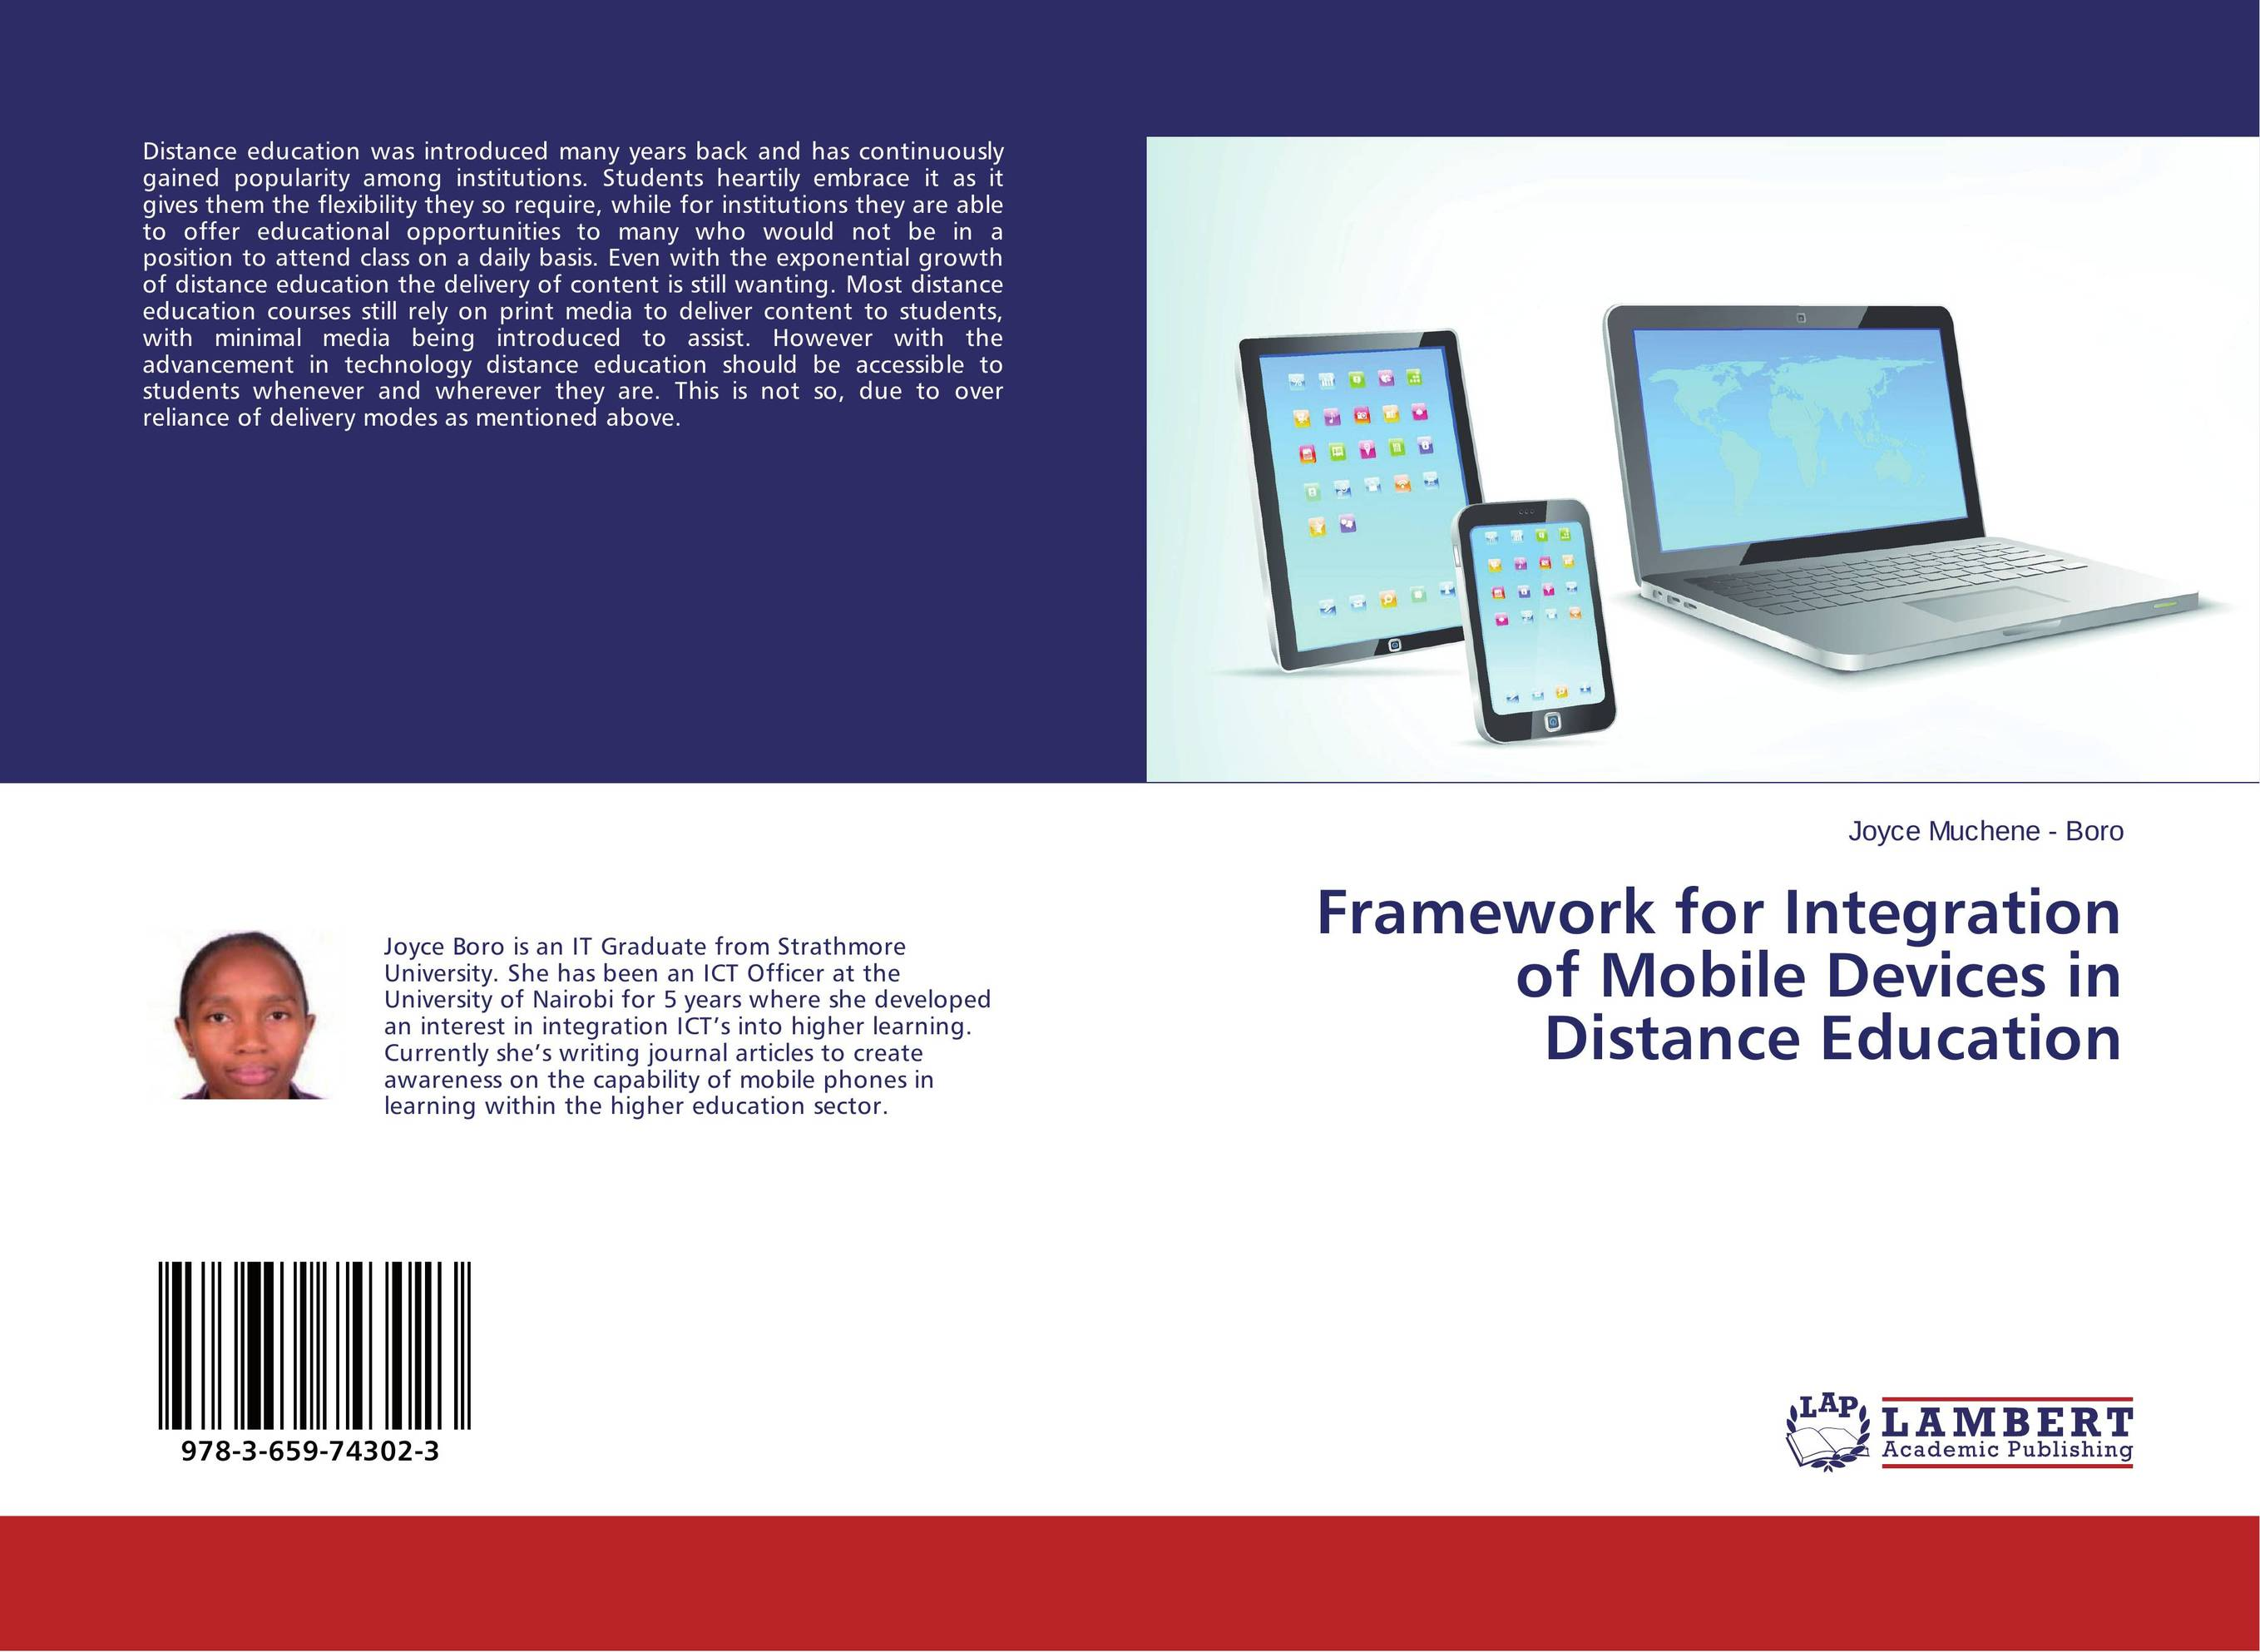 Framework for Integration of Mobile Devices in Distance Education seeing things as they are